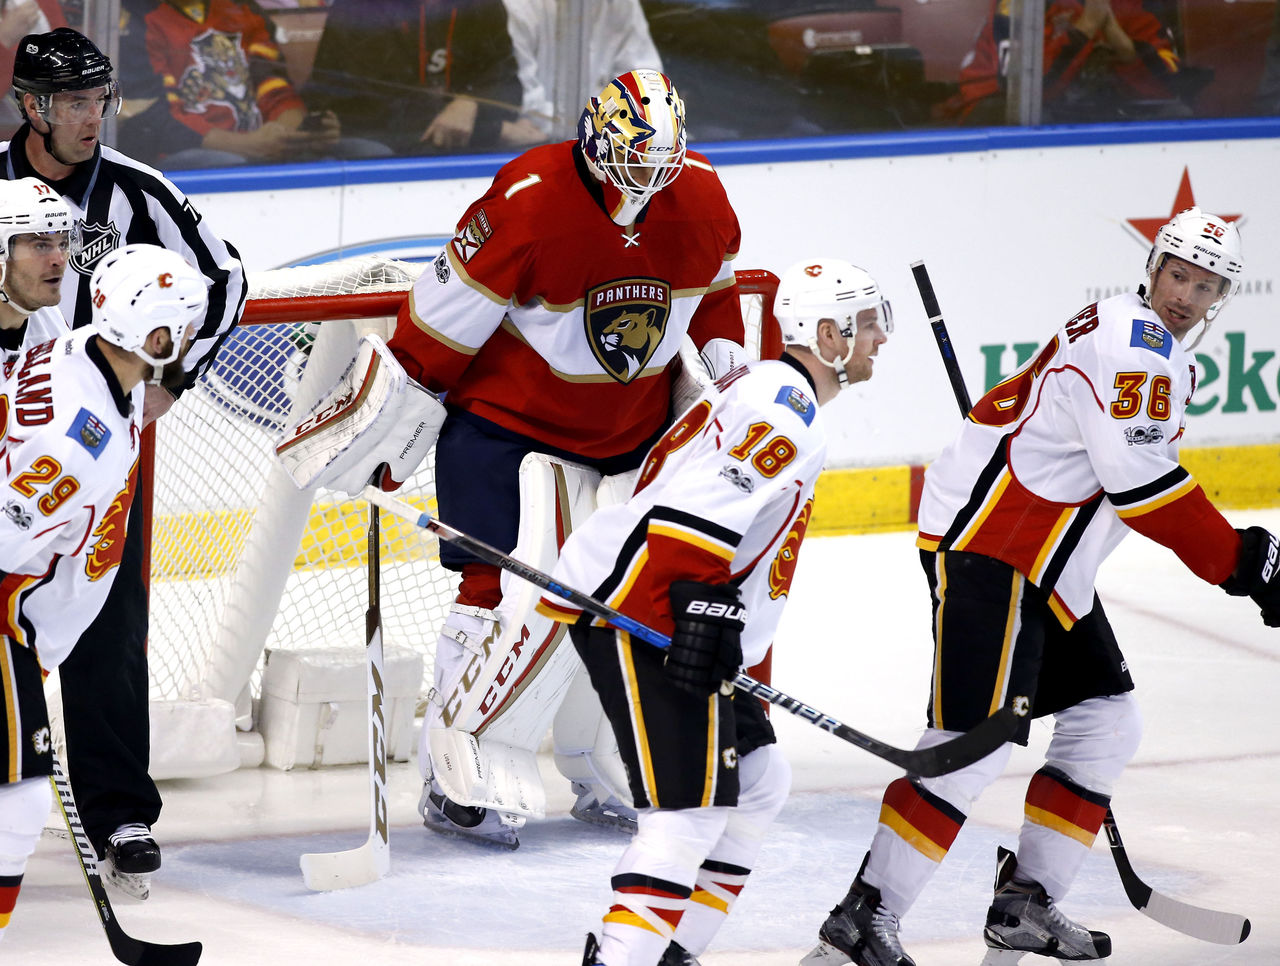 Cropped 2017 02 25t023844z 2028477183 nocid rtrmadp 3 nhl calgary flames at florida panthers